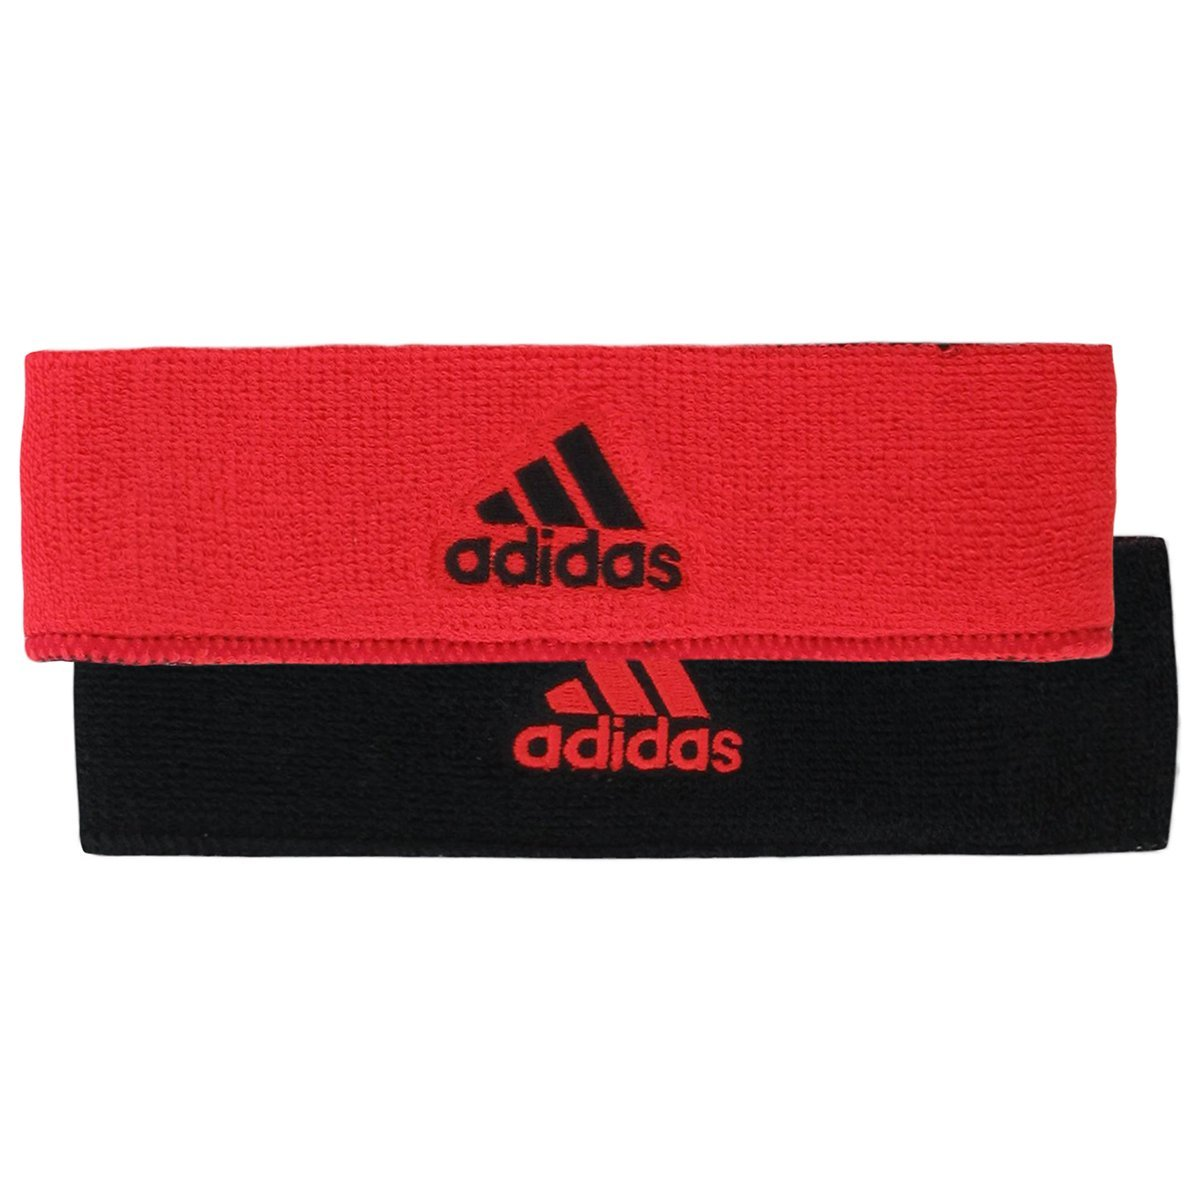 Get Colorful with the Adidas Reversible Headband